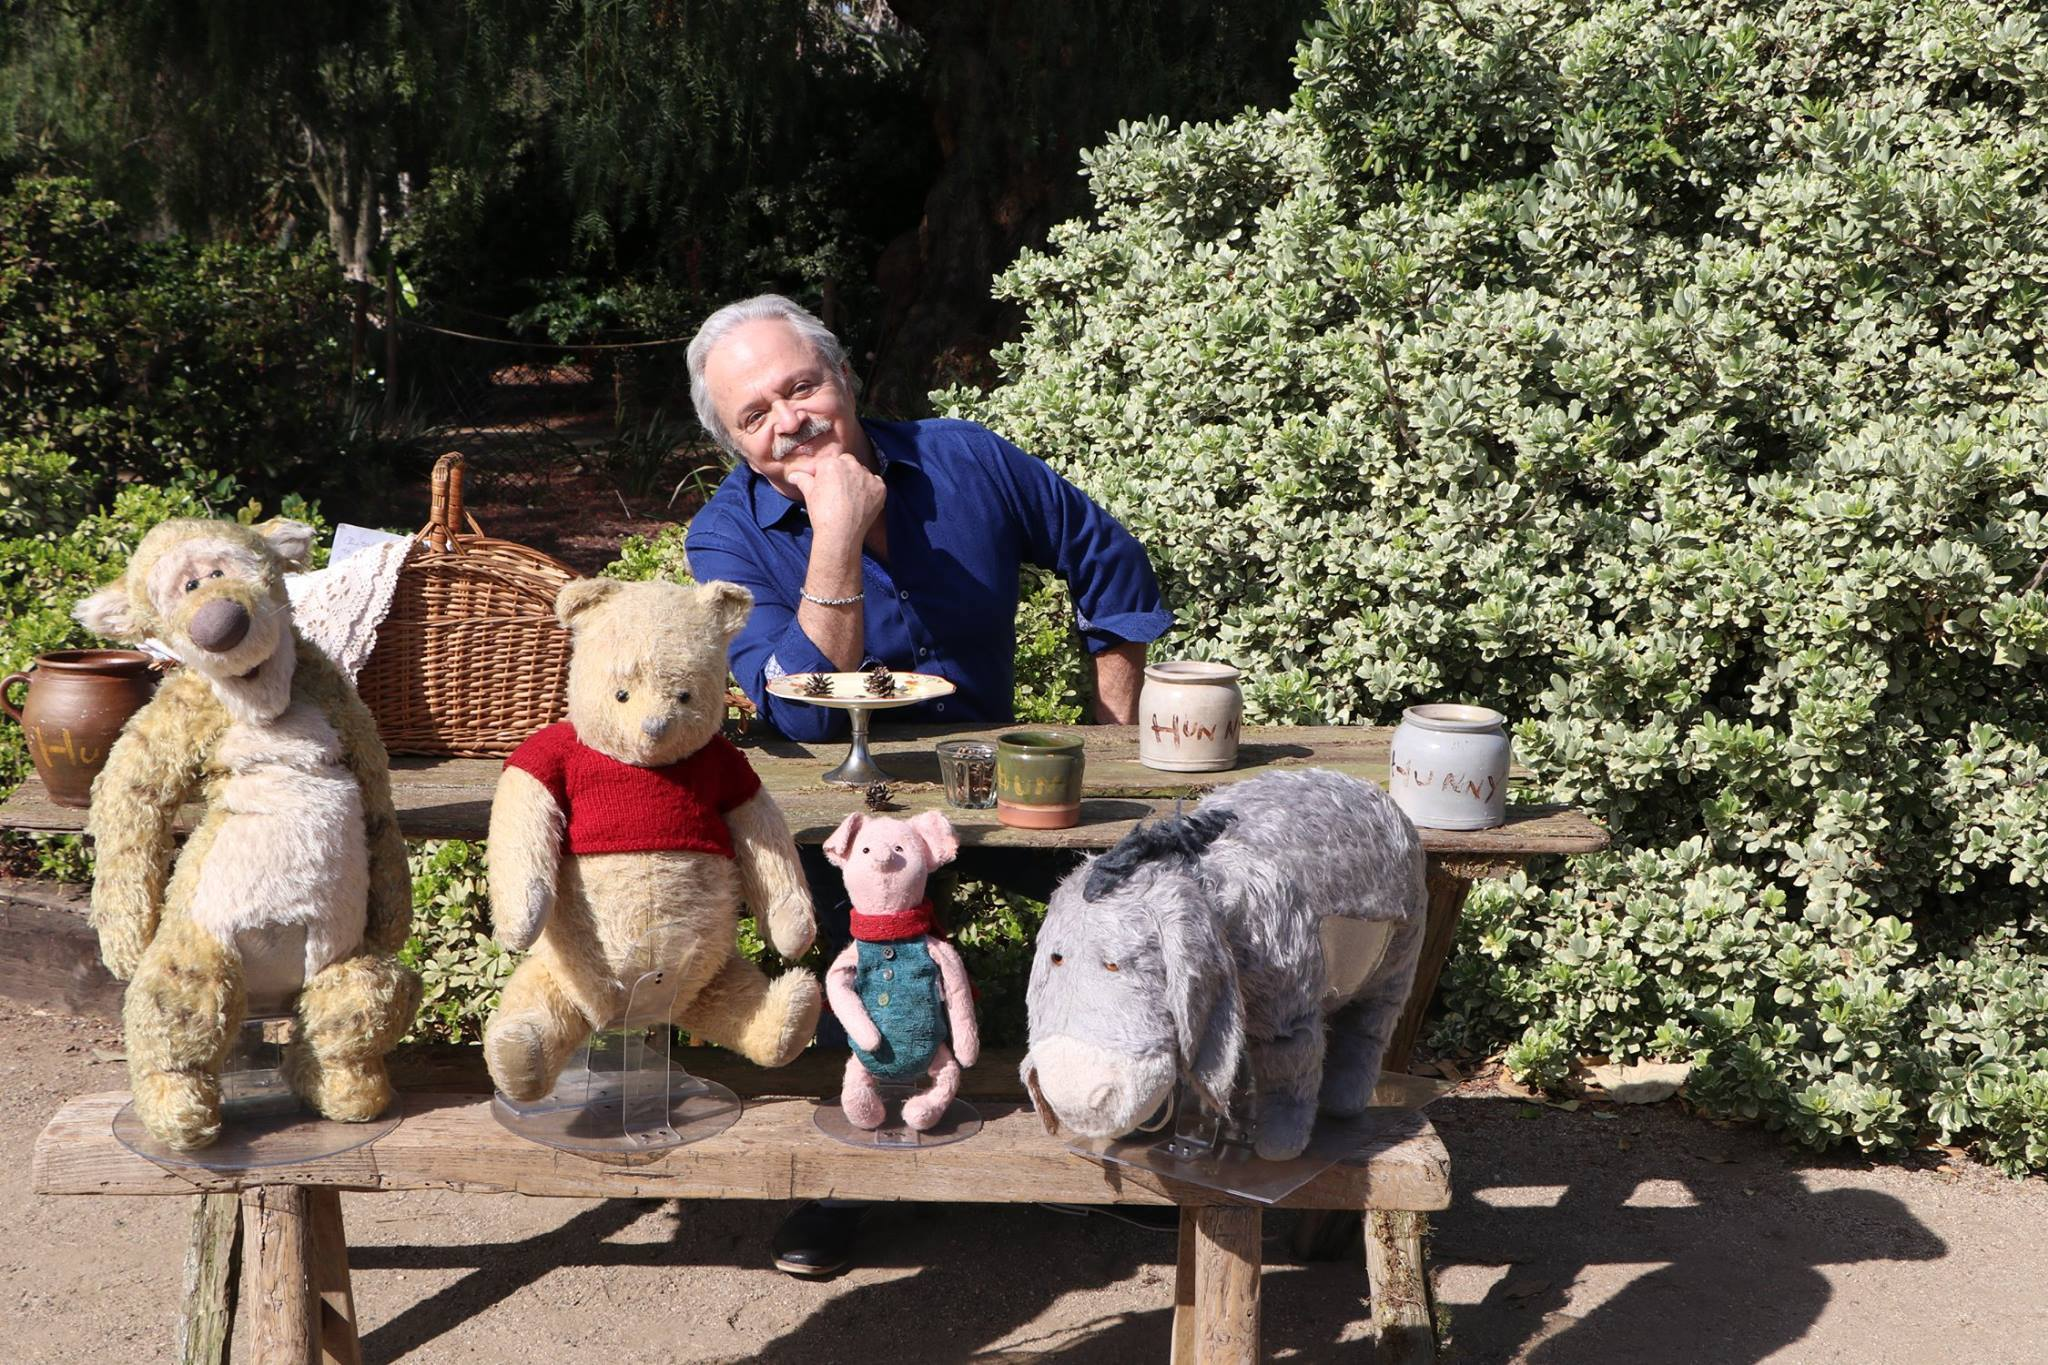 Jim Cummings with Winnie the Pooh and friends